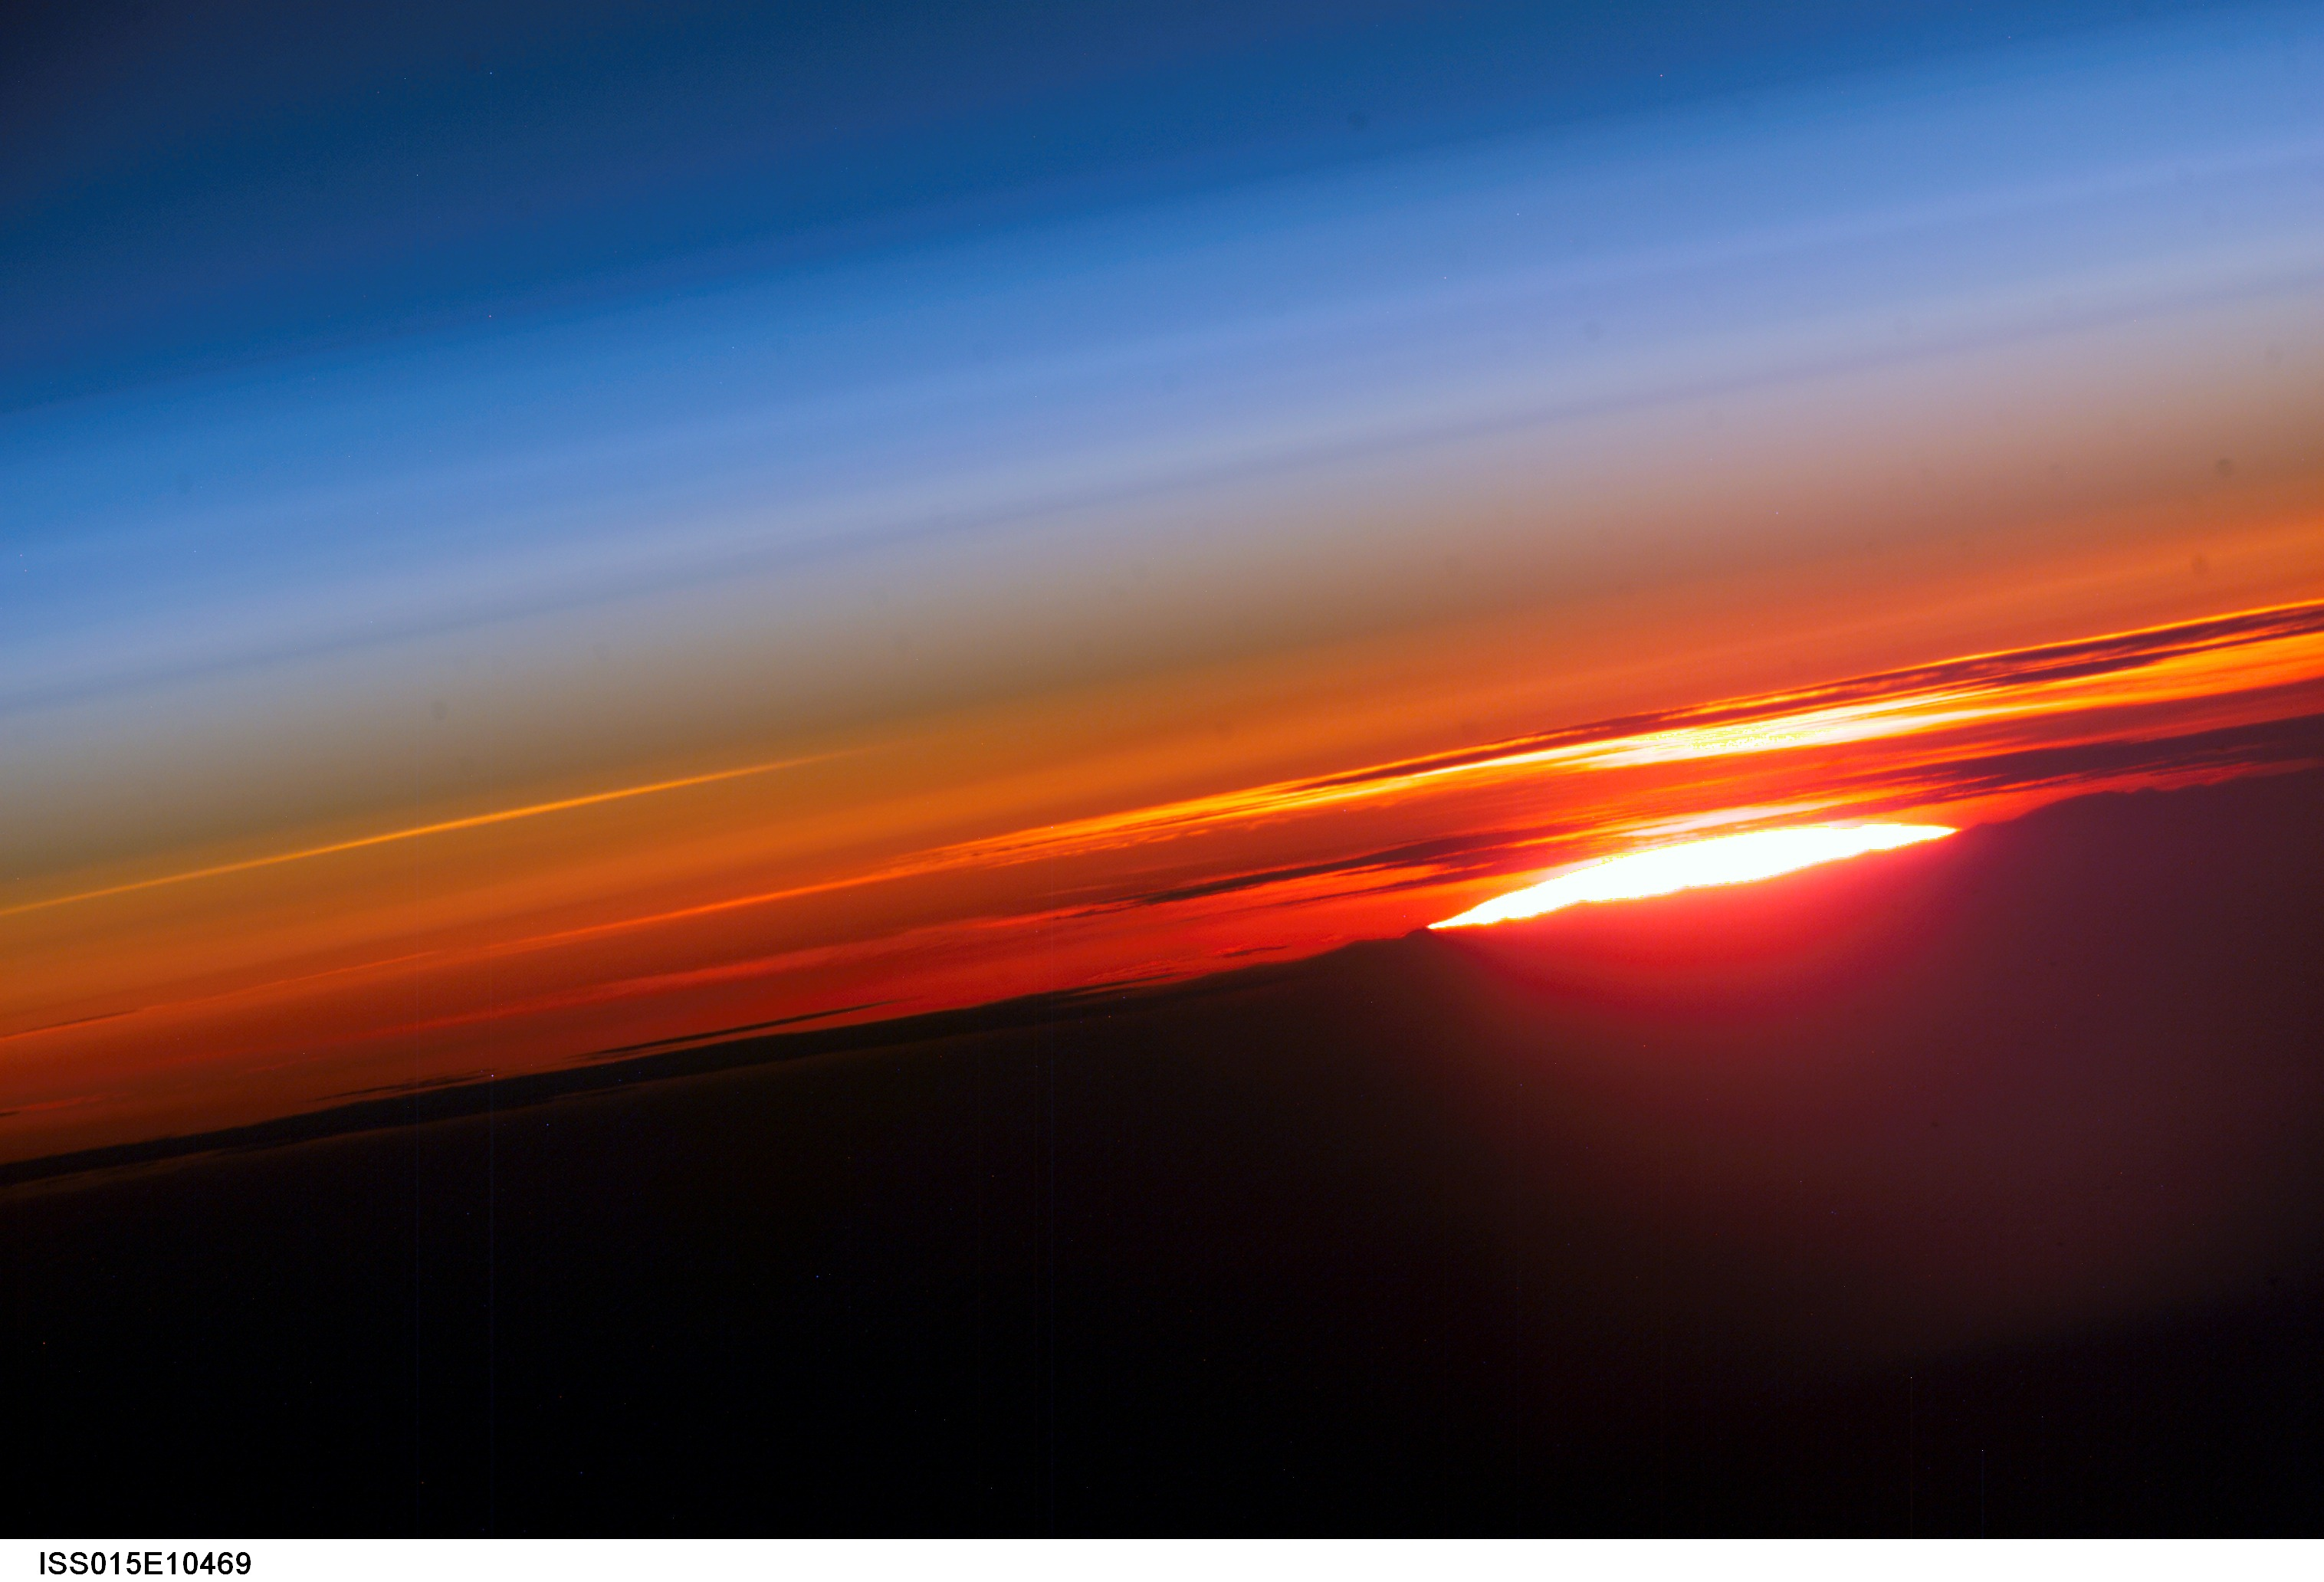 The profile of the atmosphere and a setting sun are featured in this image photographed by an Expedition 15 crewmember on the International Space Station. Image credit: NASA